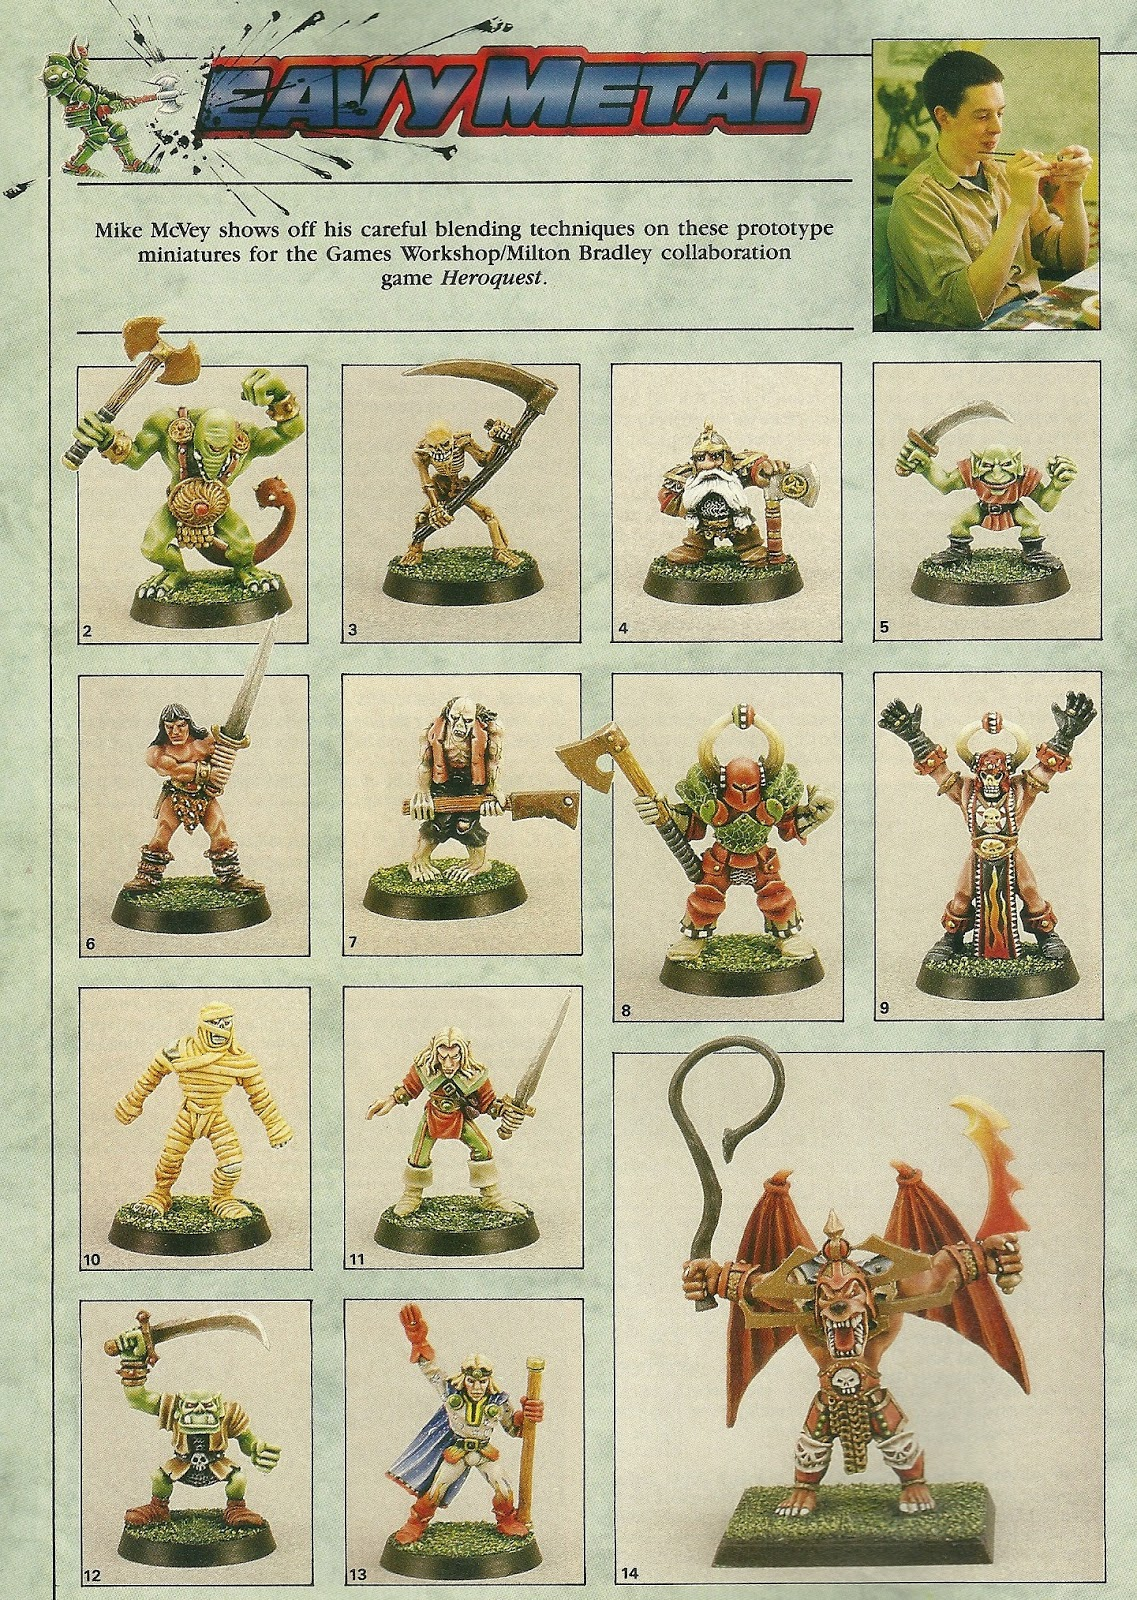 Back in the 80's, we would stare at White Dwarf pages like these for hours, trying to figure out how the artists achieved various effects.